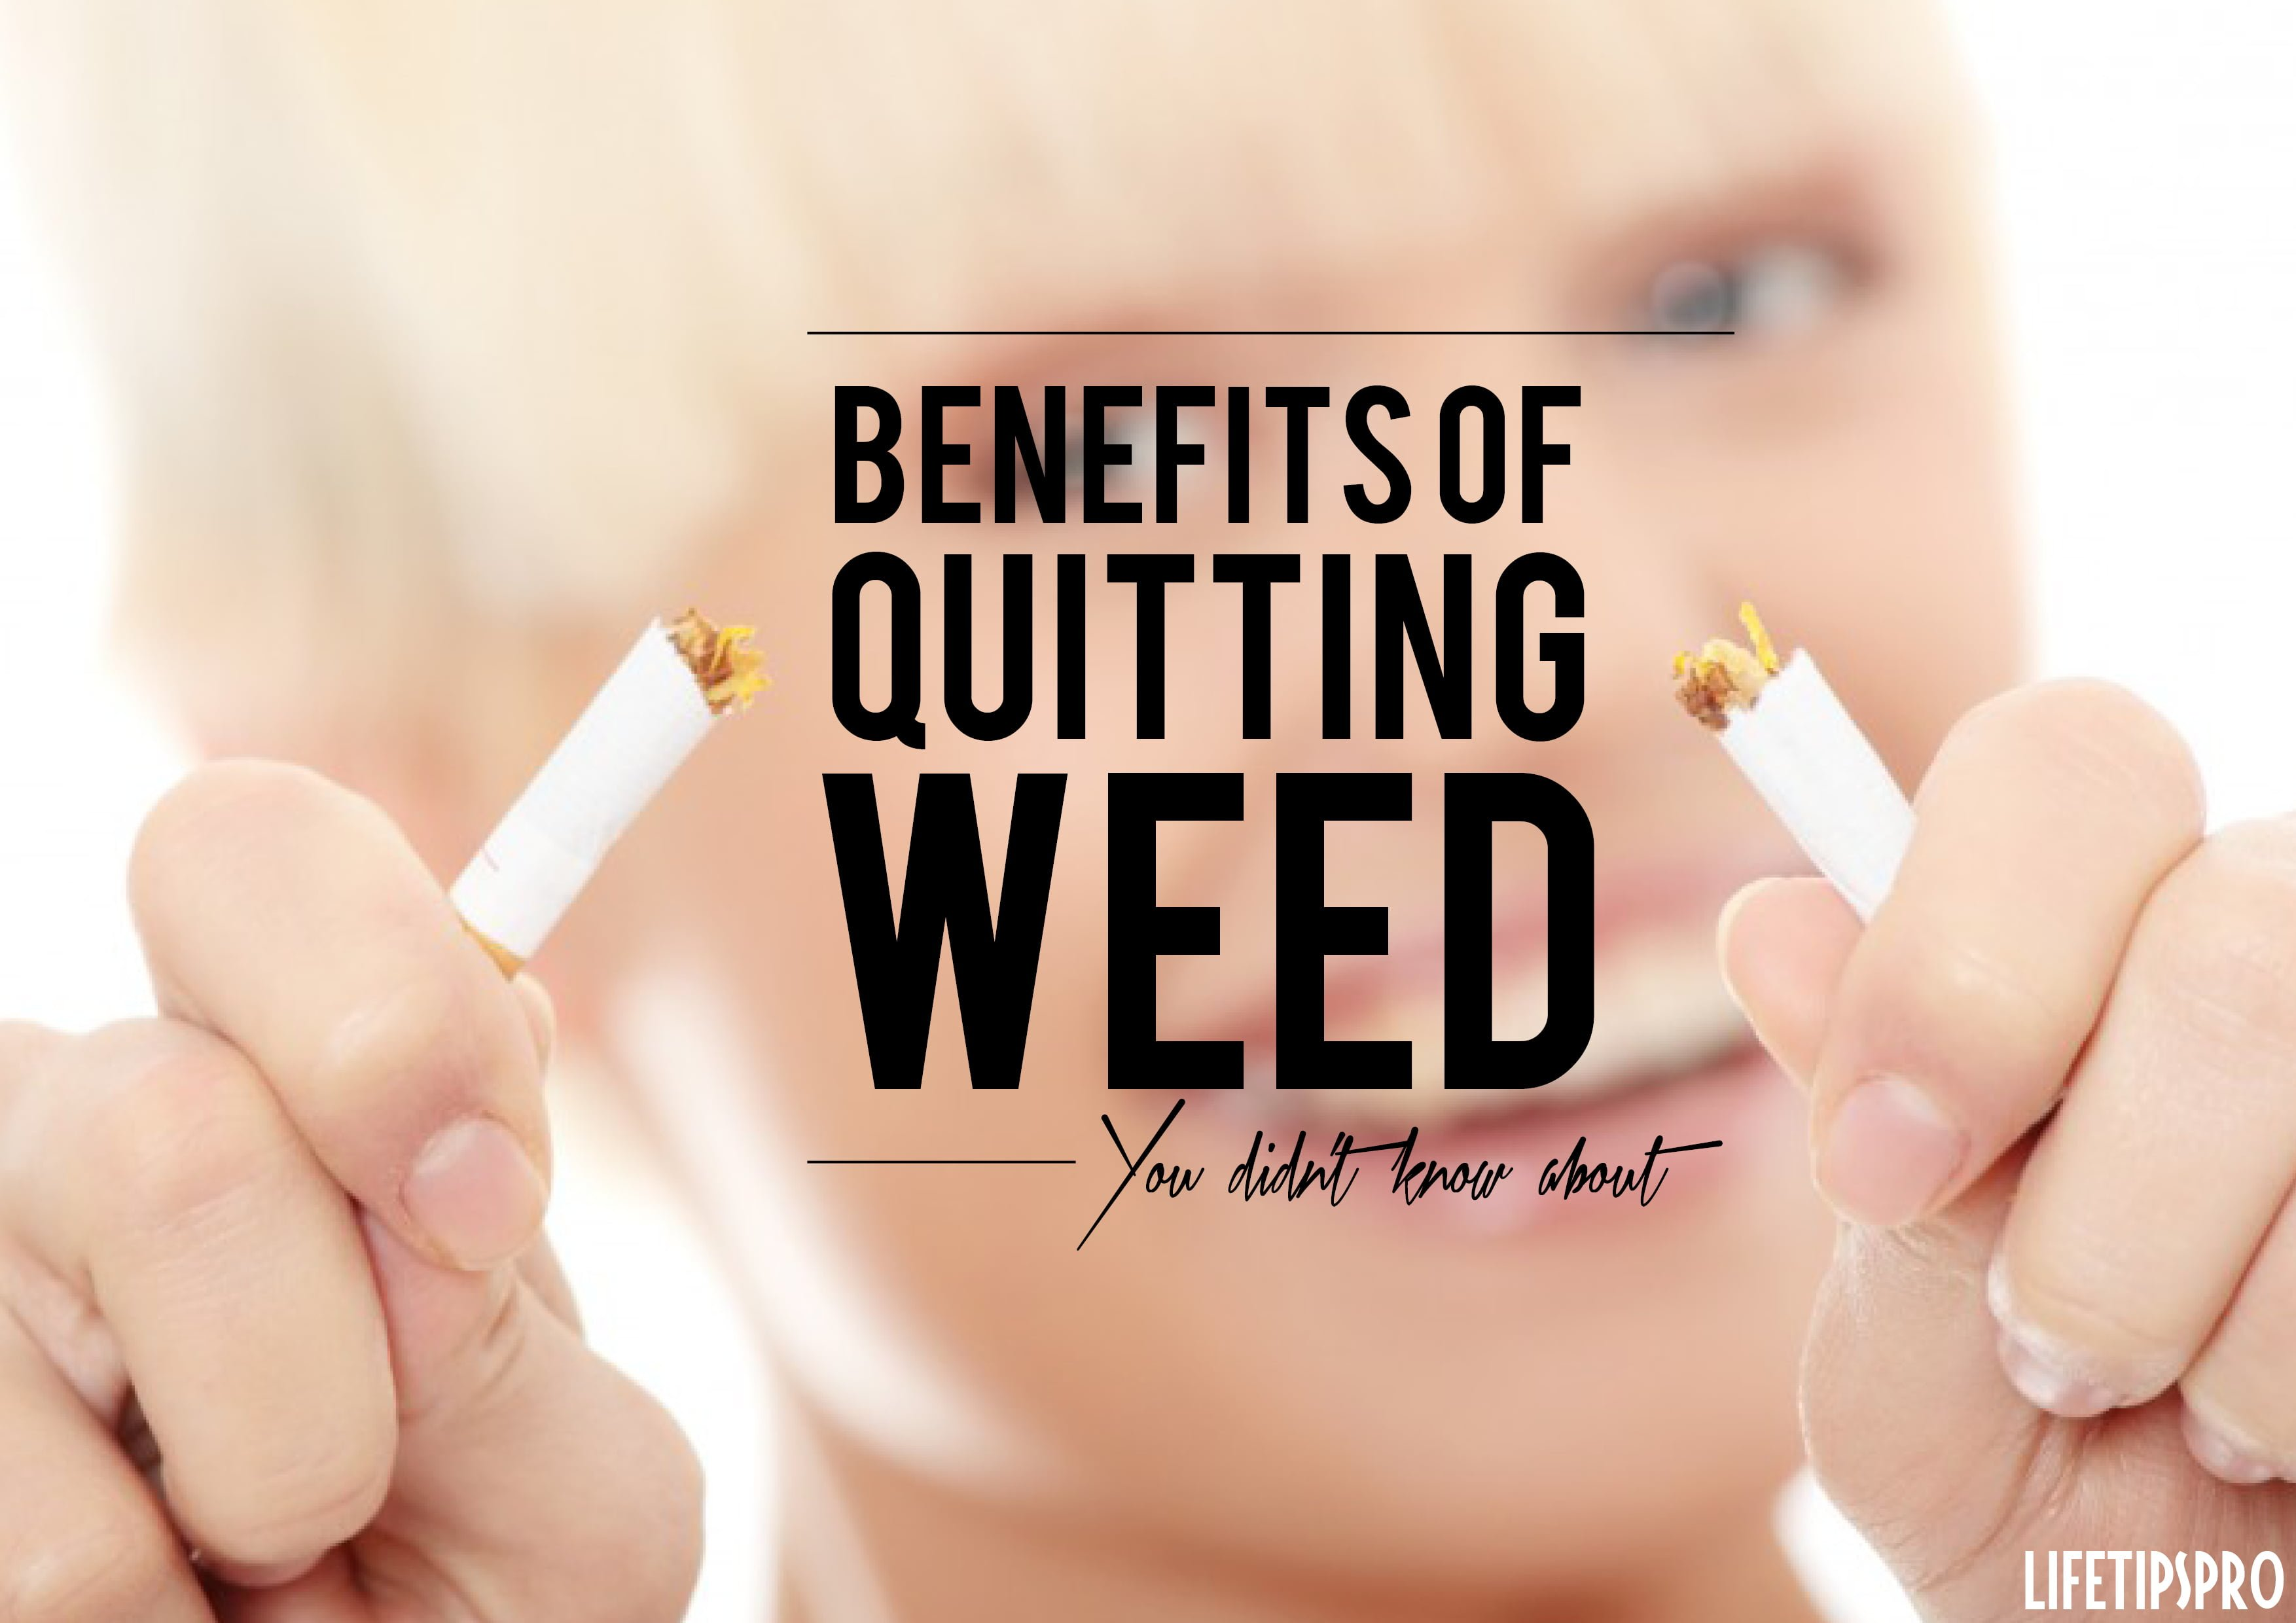 Benefits of quitting weed, how to stop smoking weed - Life T